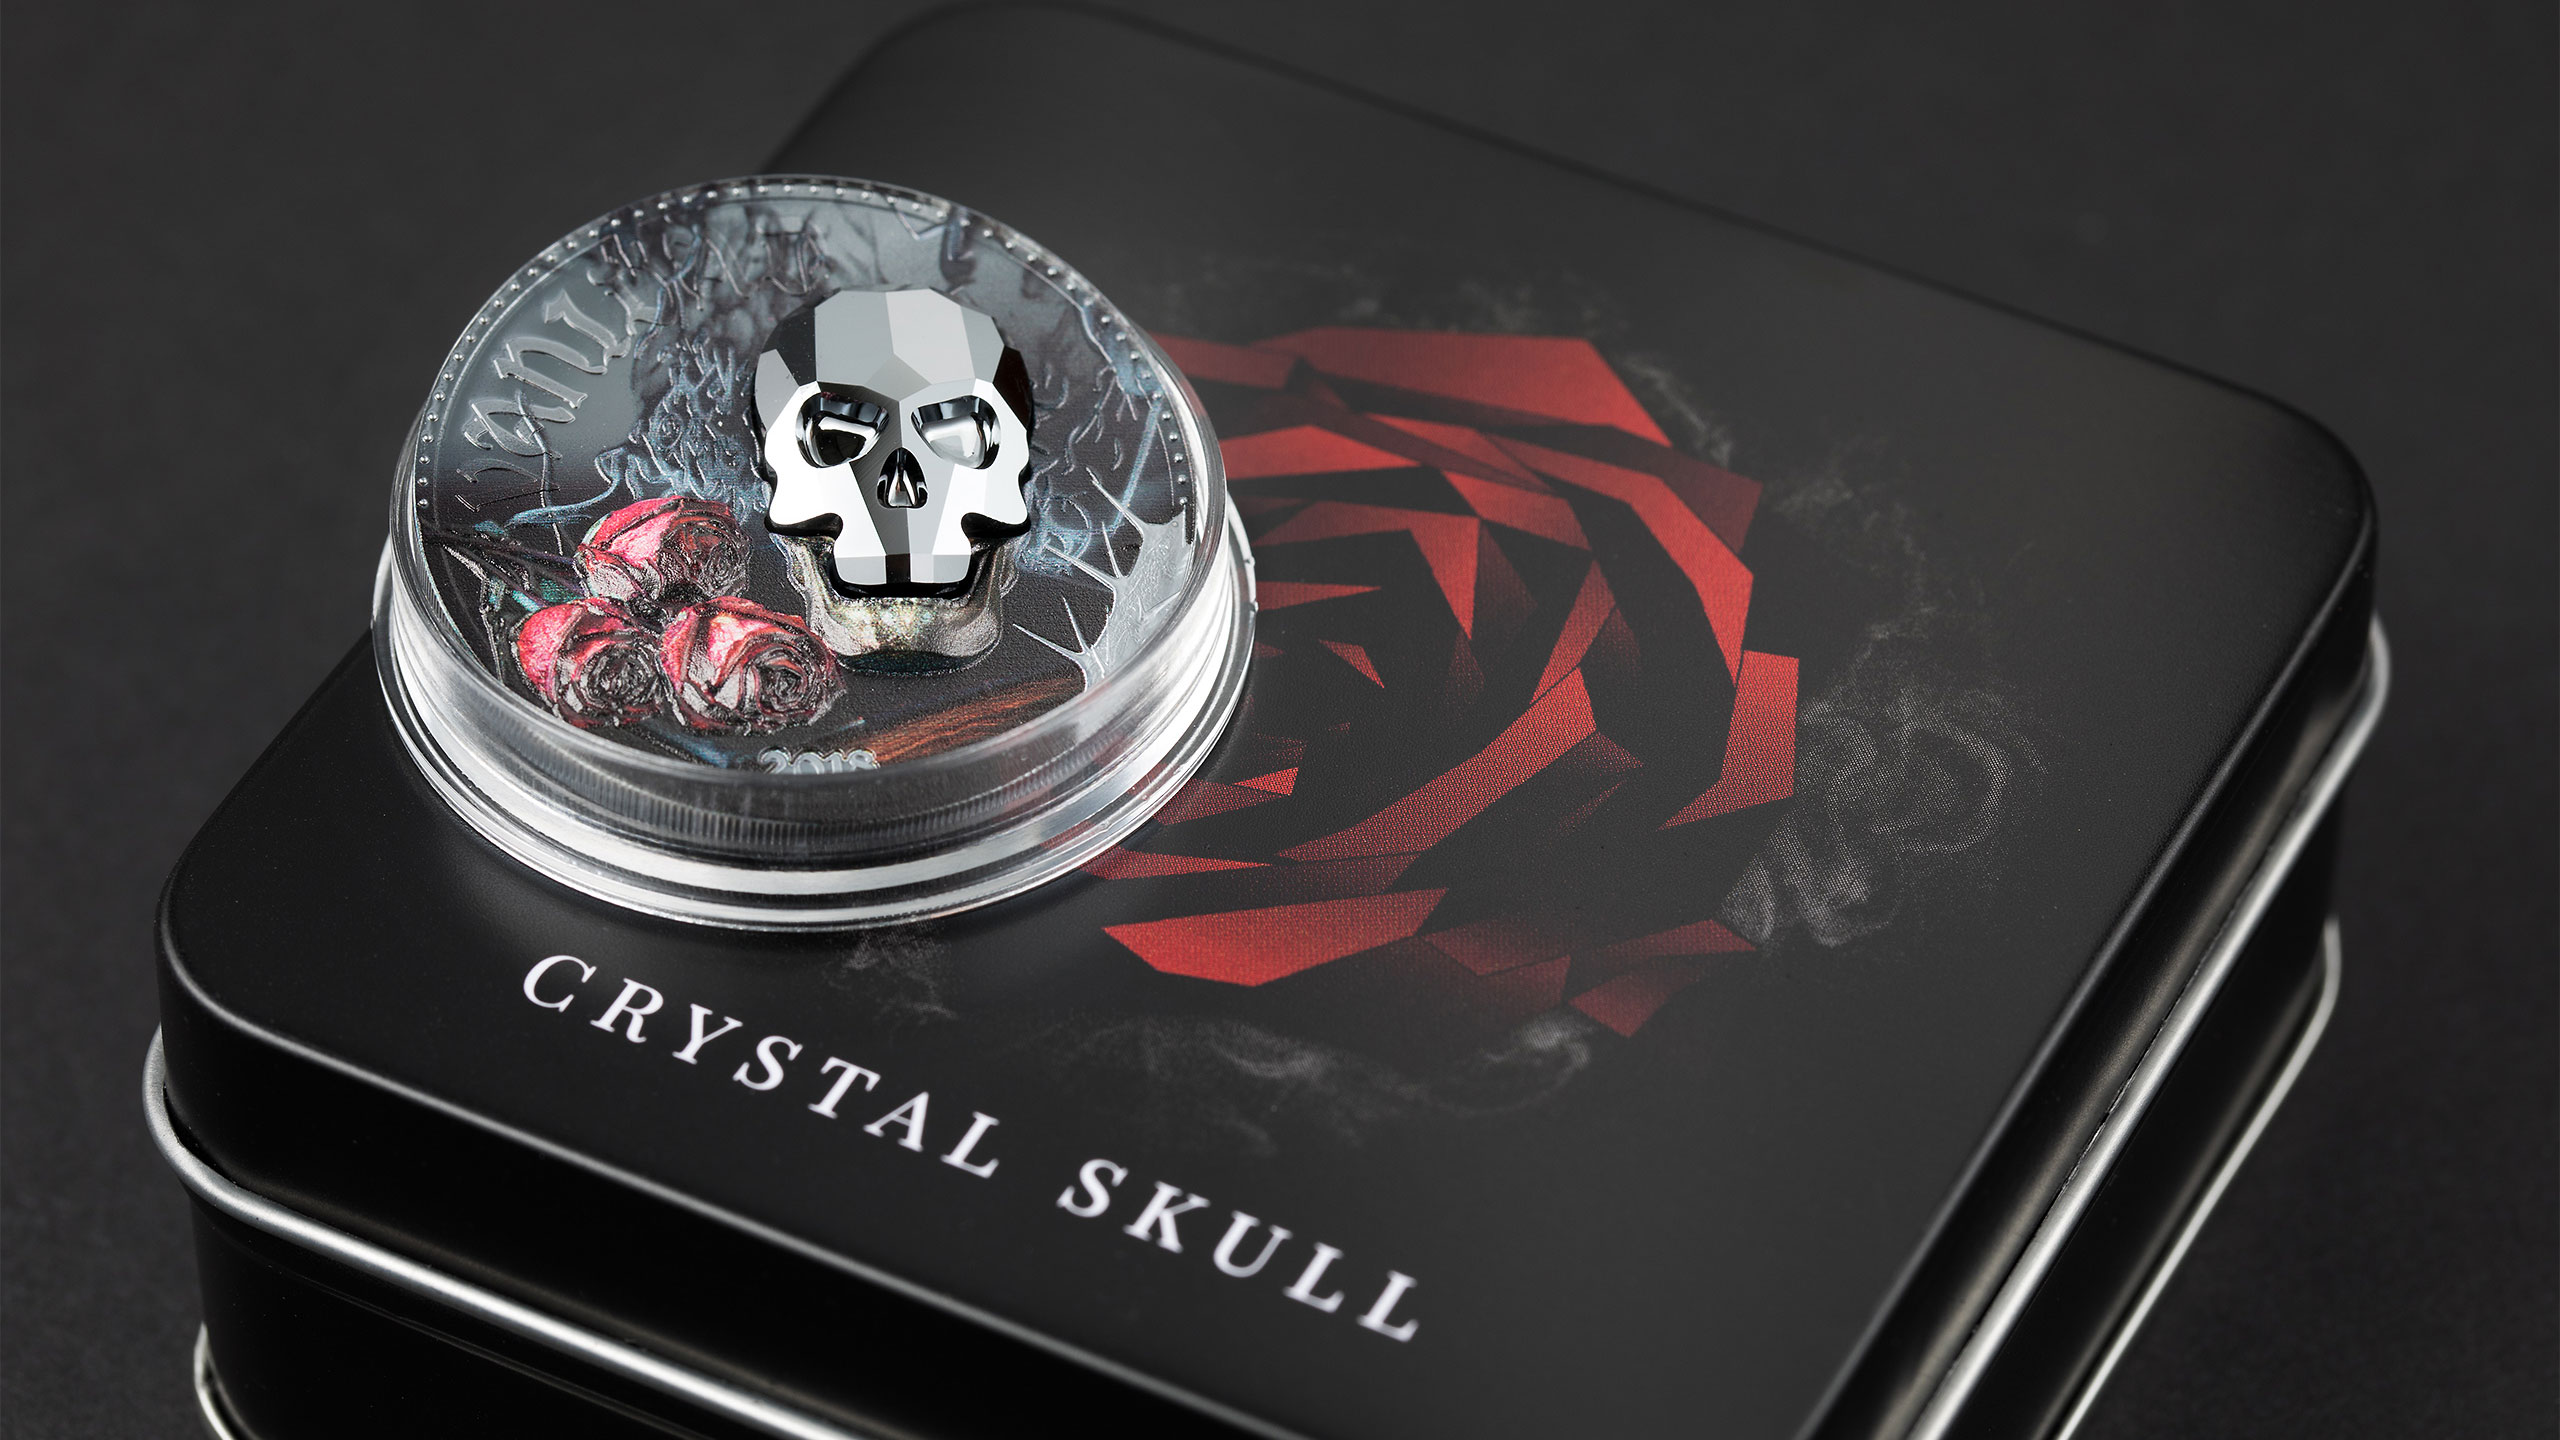 Crystal Skull silver coin with Swarovski element and smartminting high relief by cit coin invest ag and b h mayer mint called vanity or vanidad